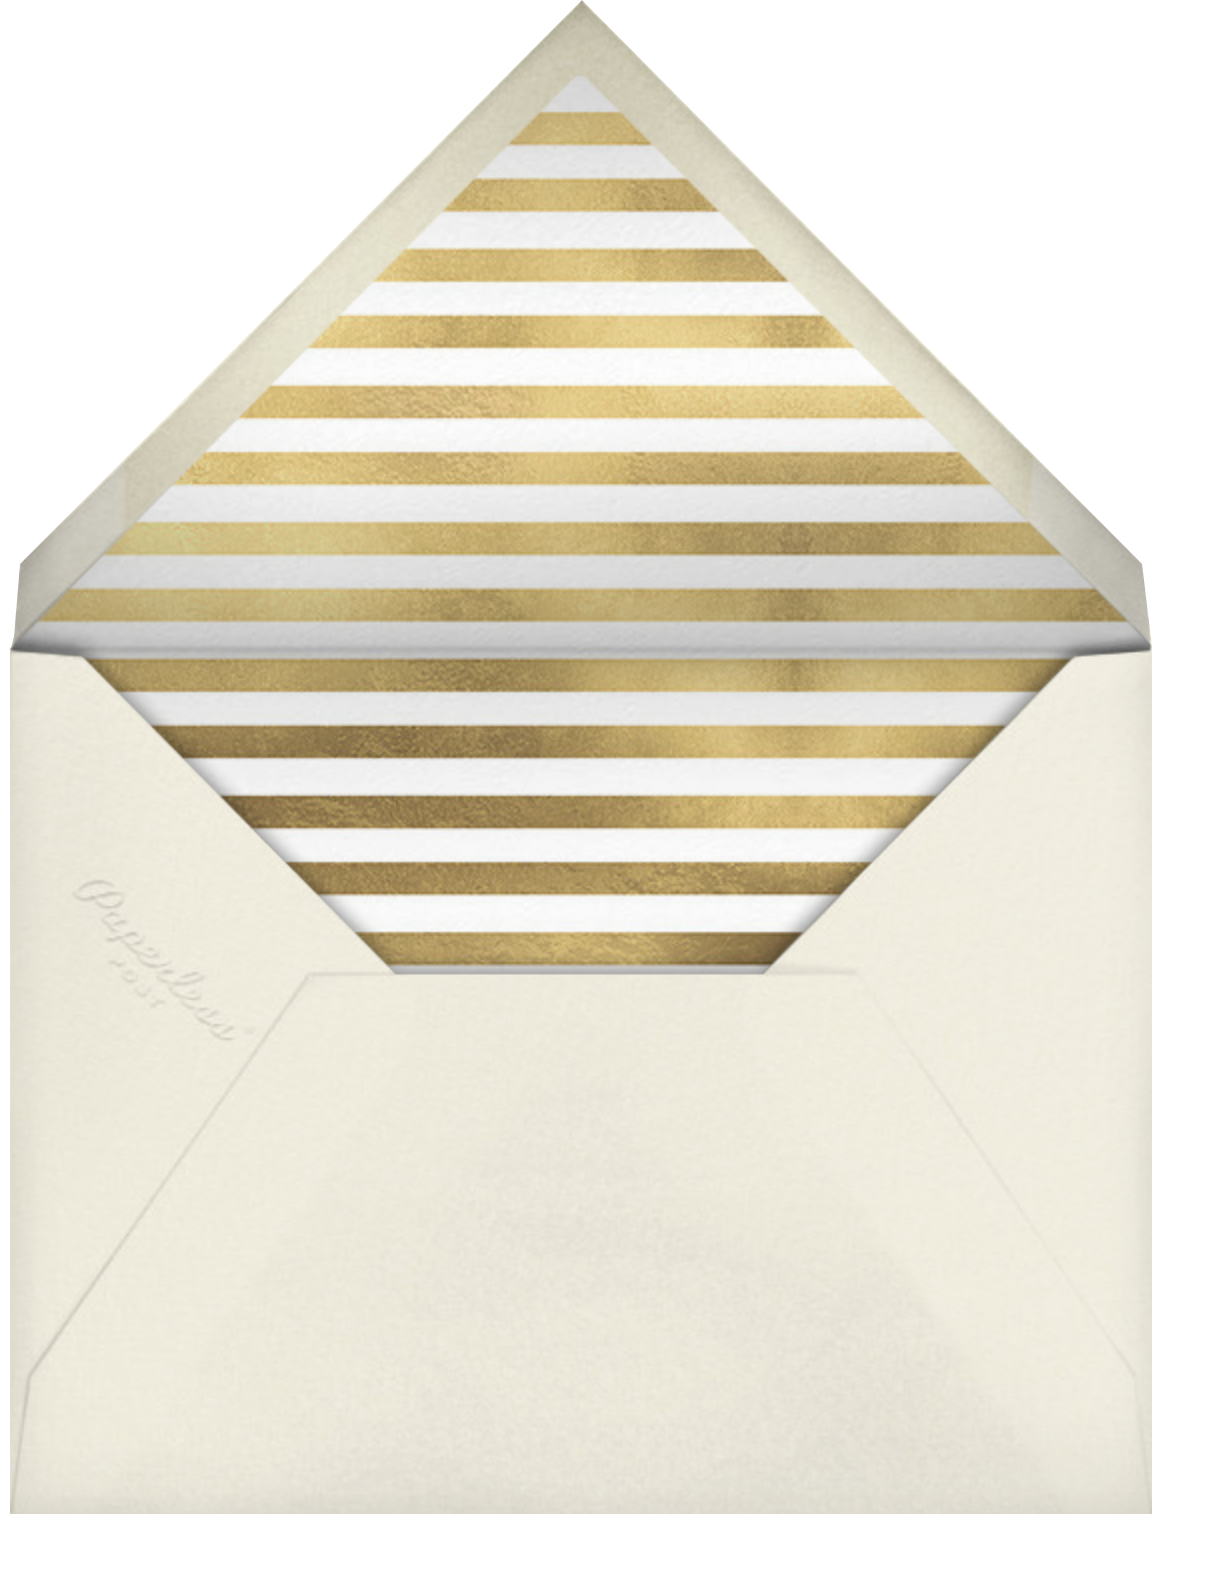 Poppies - Taupe  - kate spade new york - All - envelope back